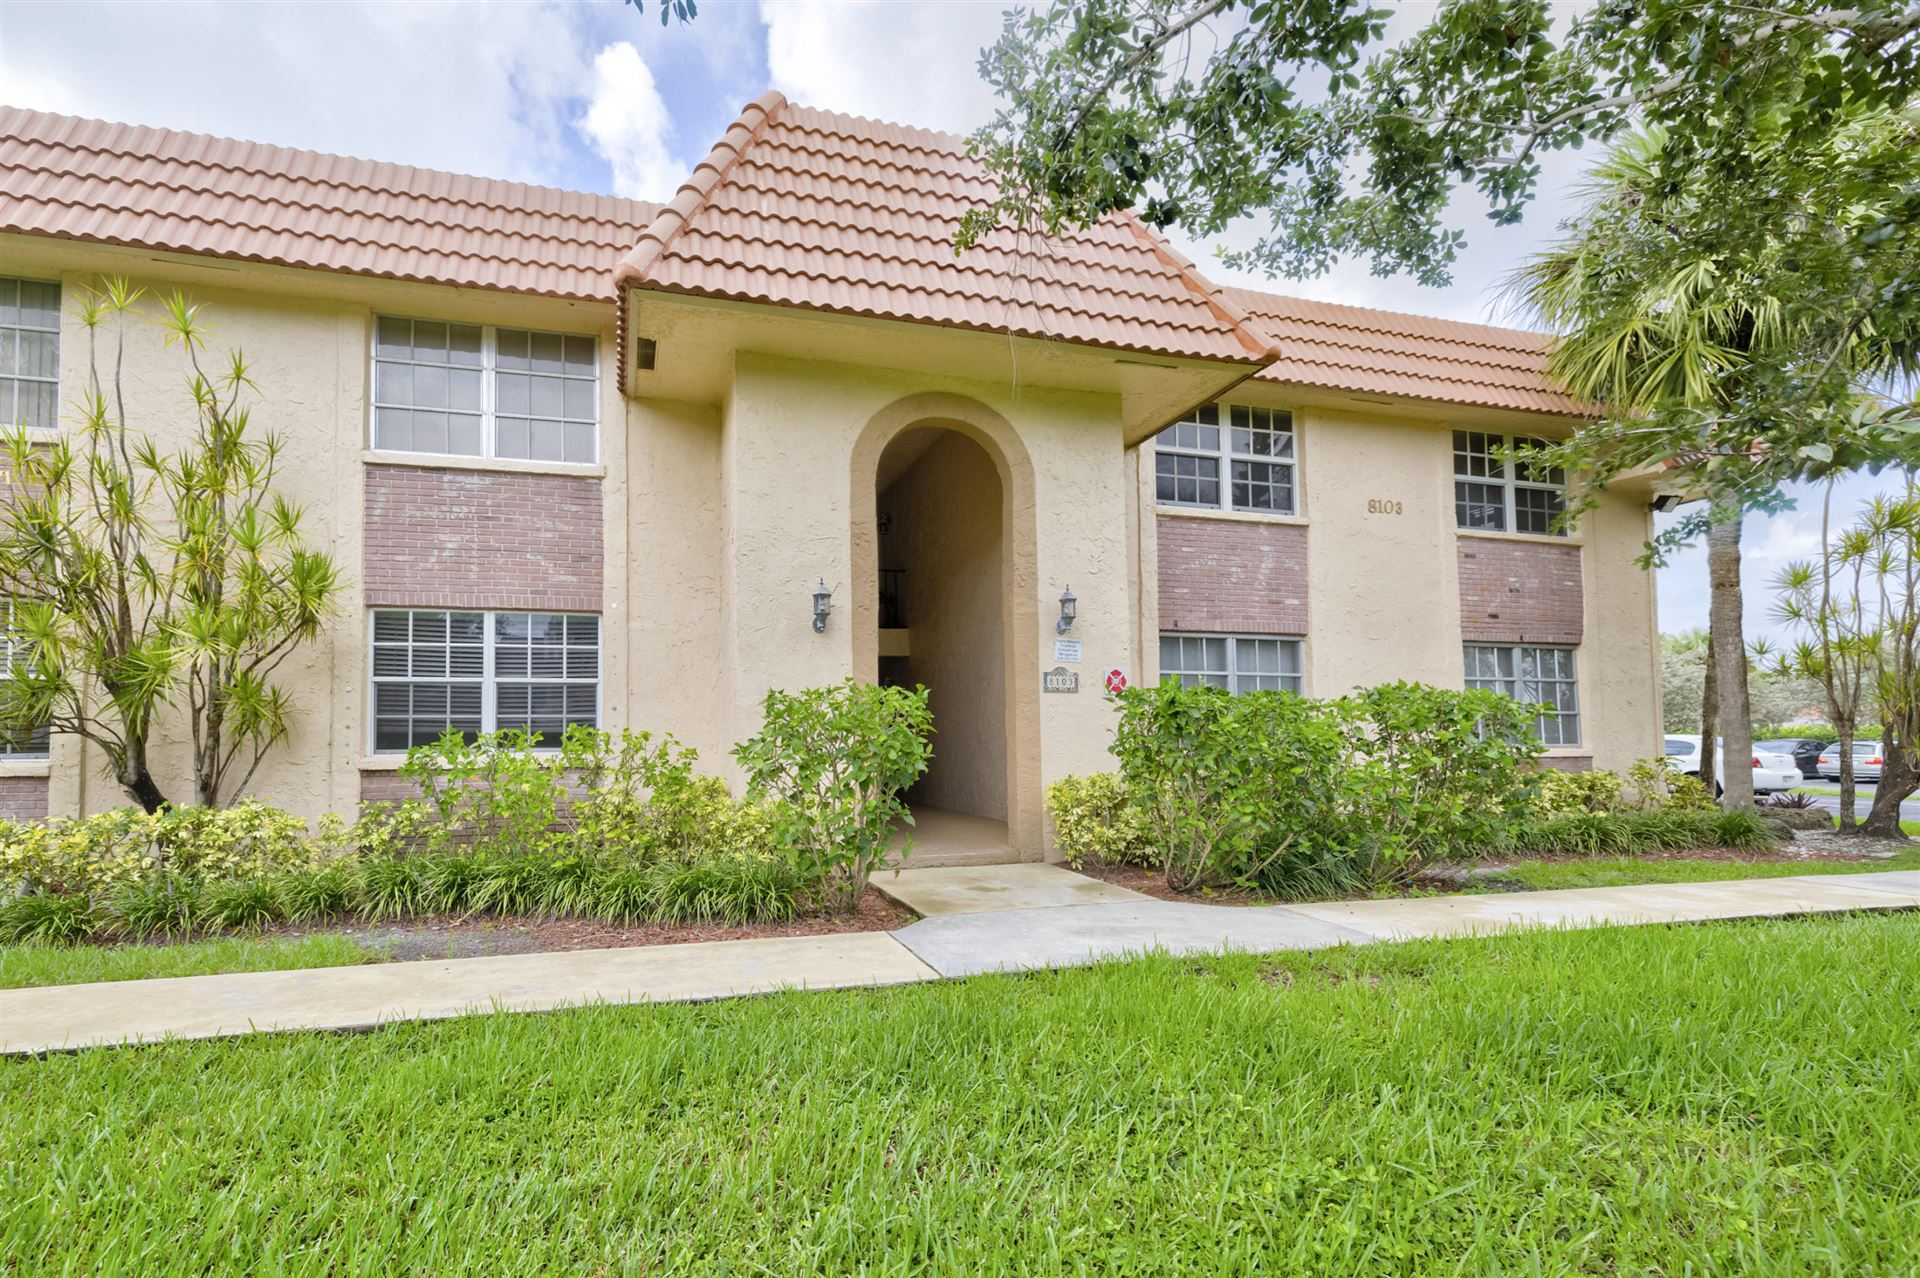 8103 NW 27th Street #4, Coral Springs, FL 33065 - #: RX-10731902